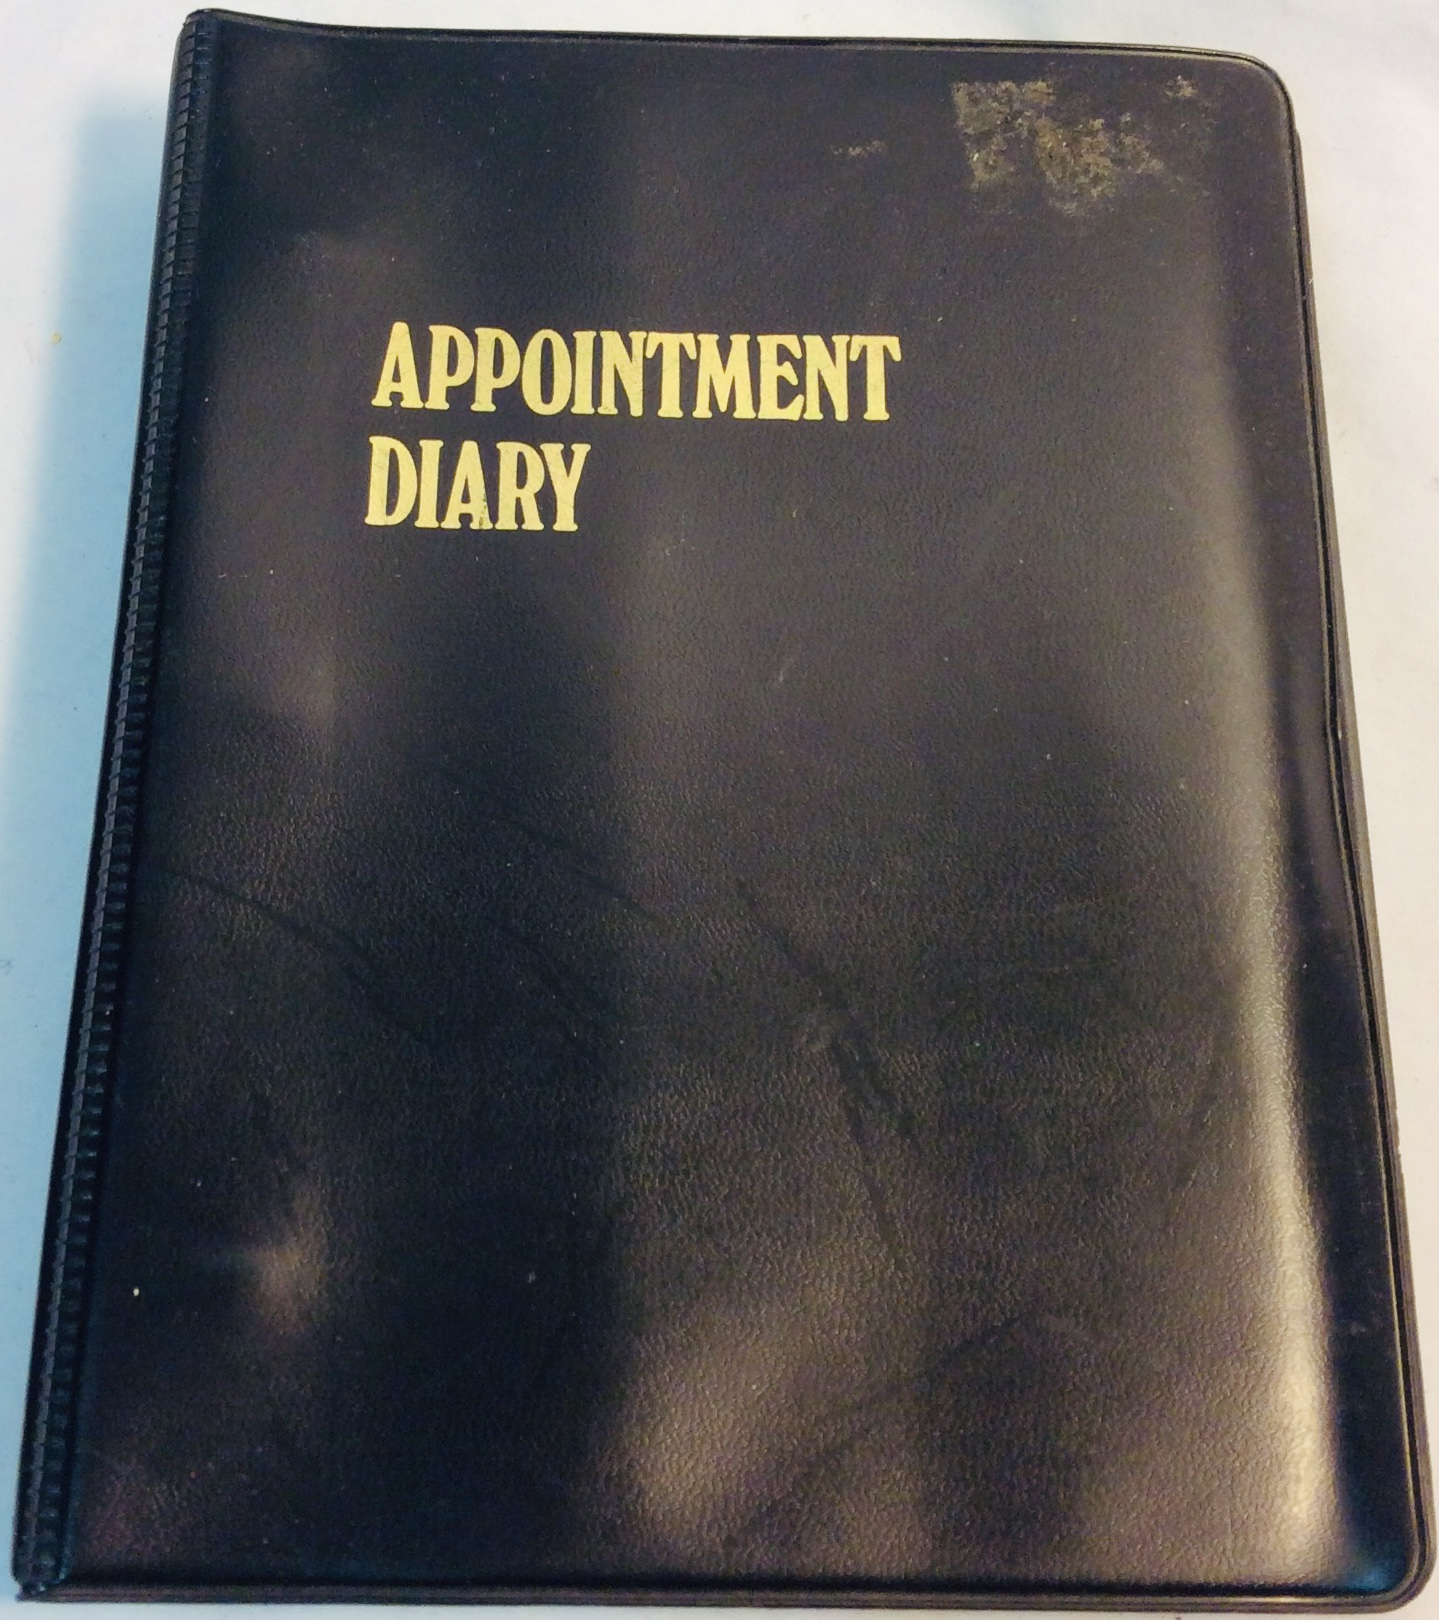 1979 appointment diary with soft cover